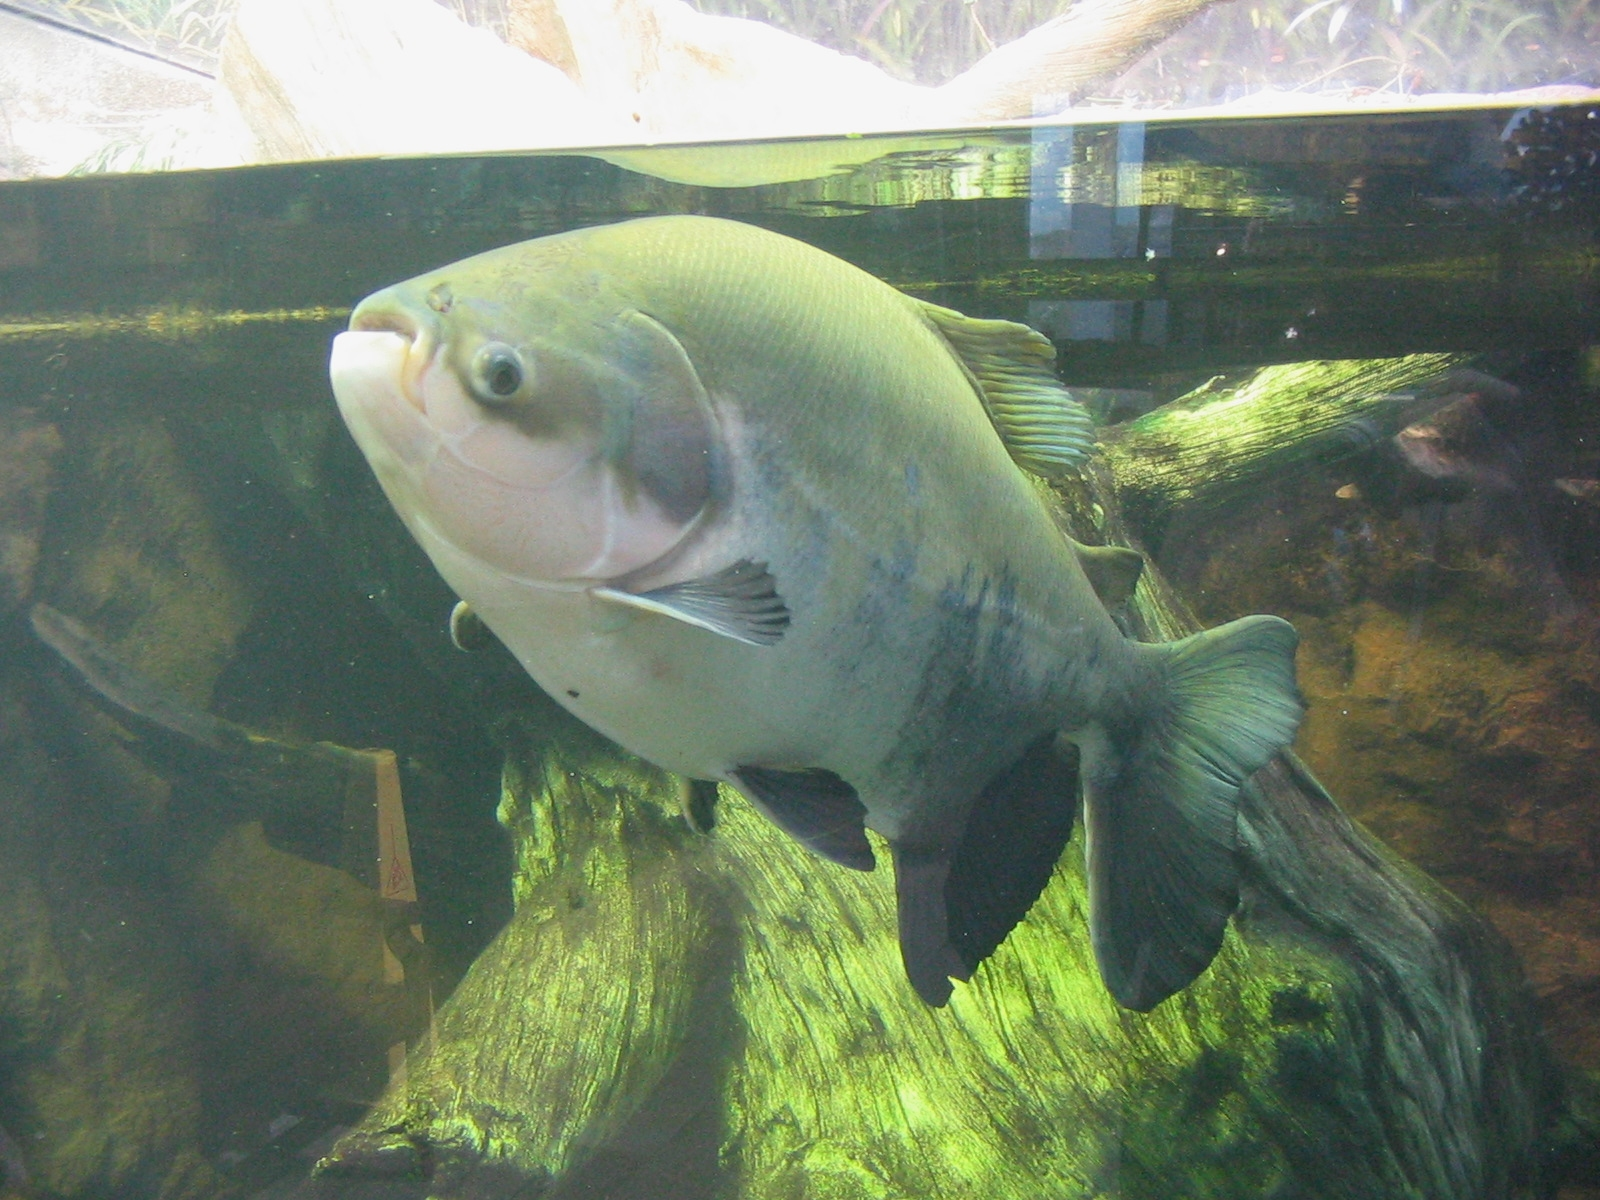 Pacu wikipedia for Types of white fish to eat